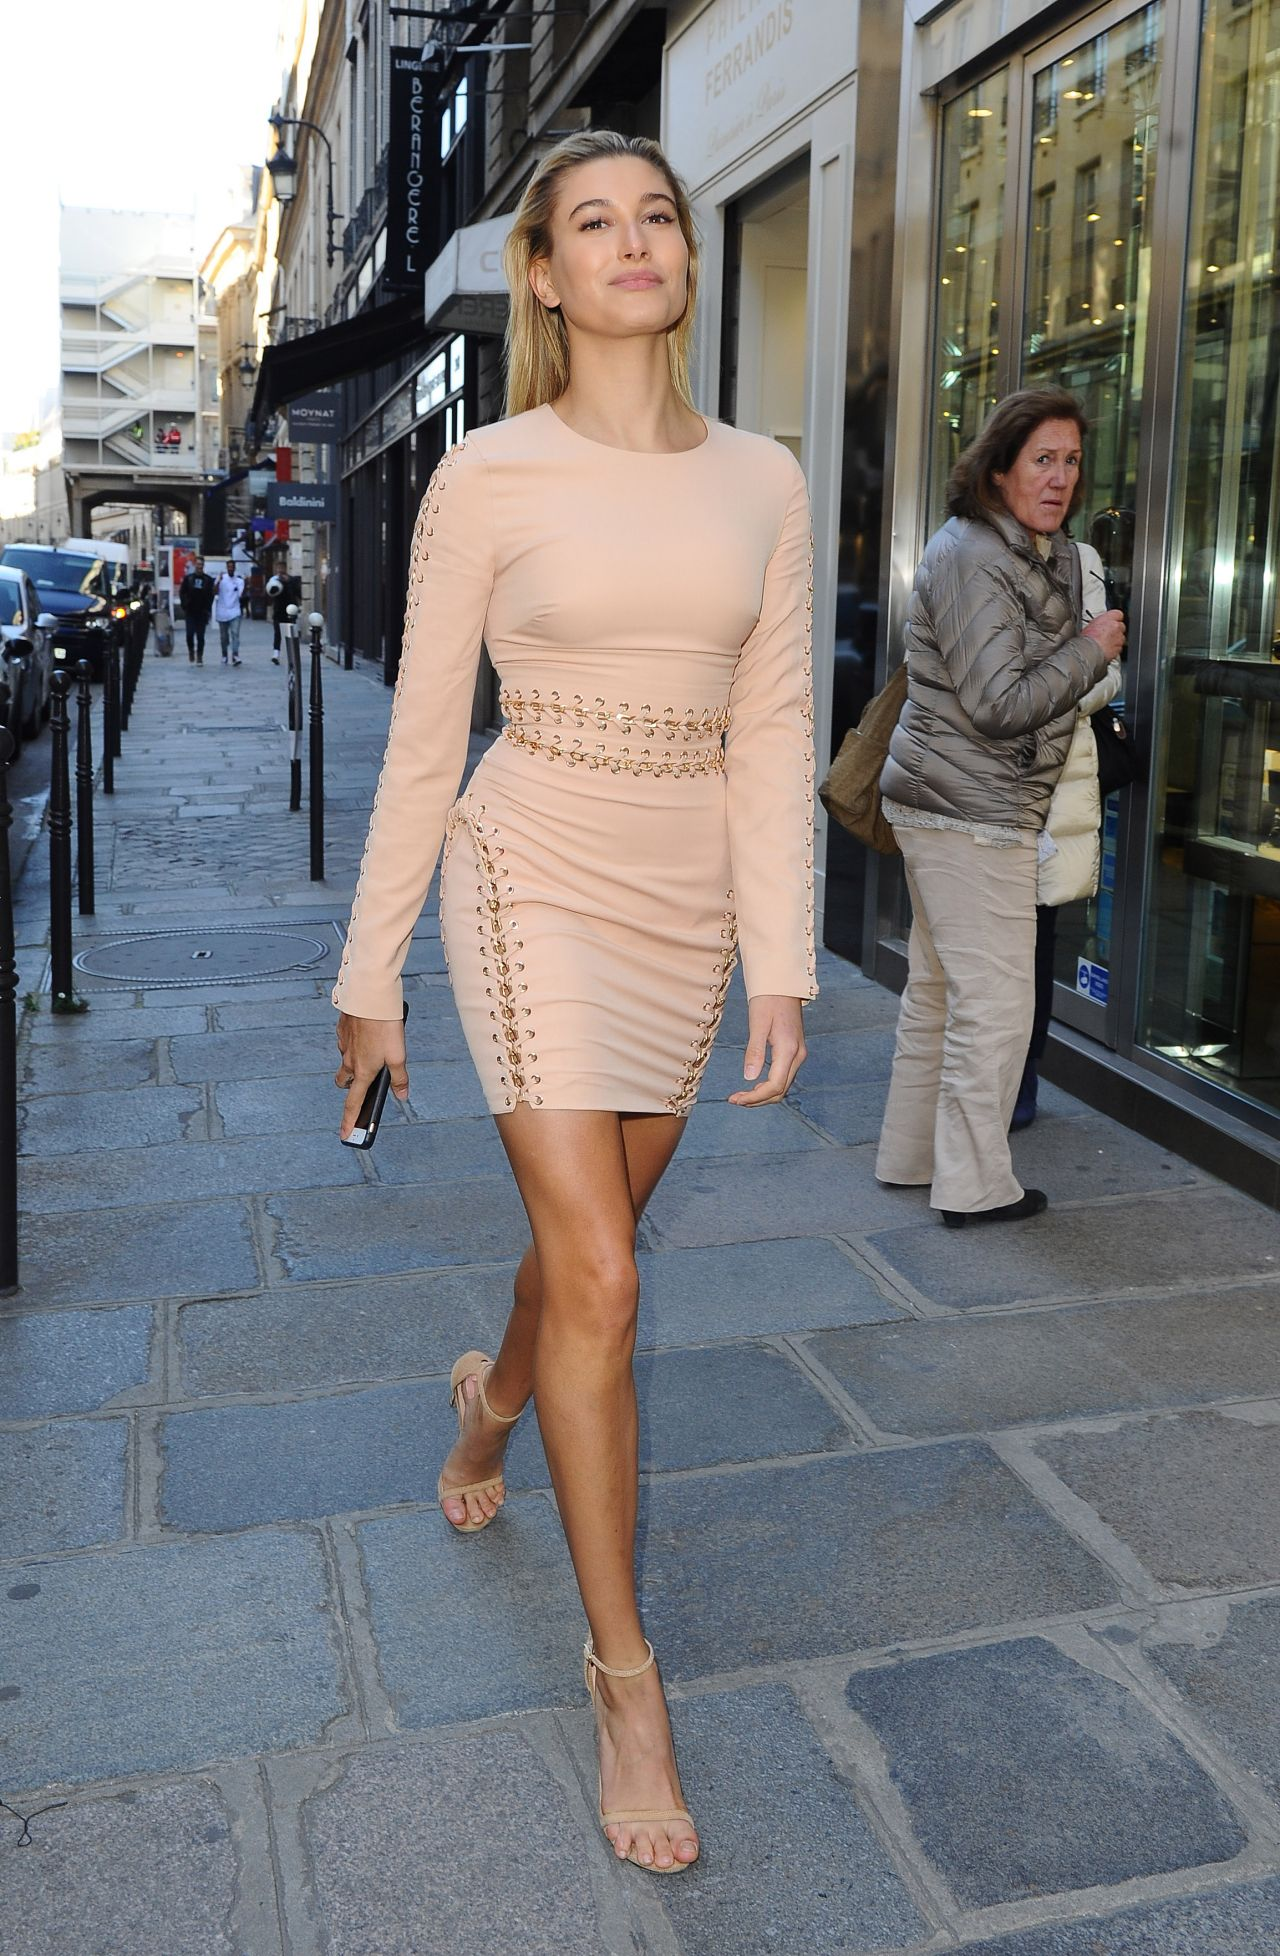 Hailey Baldwin In Mini Dress - Out In Paris, October 2015-9406